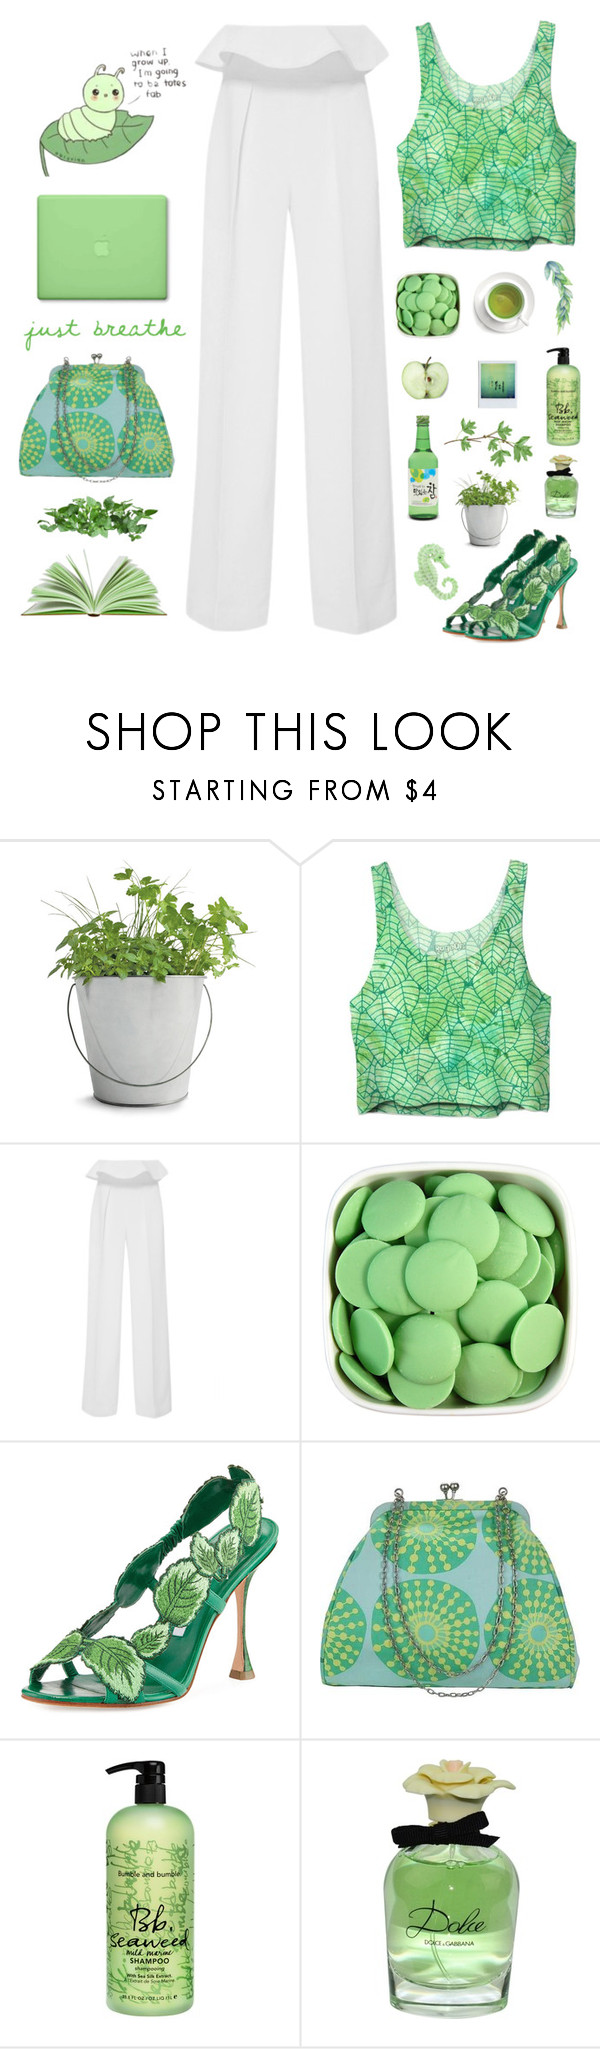 """""""Let me be cool and breezy like a soju"""" by kwonrena ❤ liked on Polyvore featuring Potting Shed Creations, Leal Daccarett, Manolo Blahnik, Amy Butler, Bumble and bumble, Dolce&Gabbana and MAC Cosmetics"""